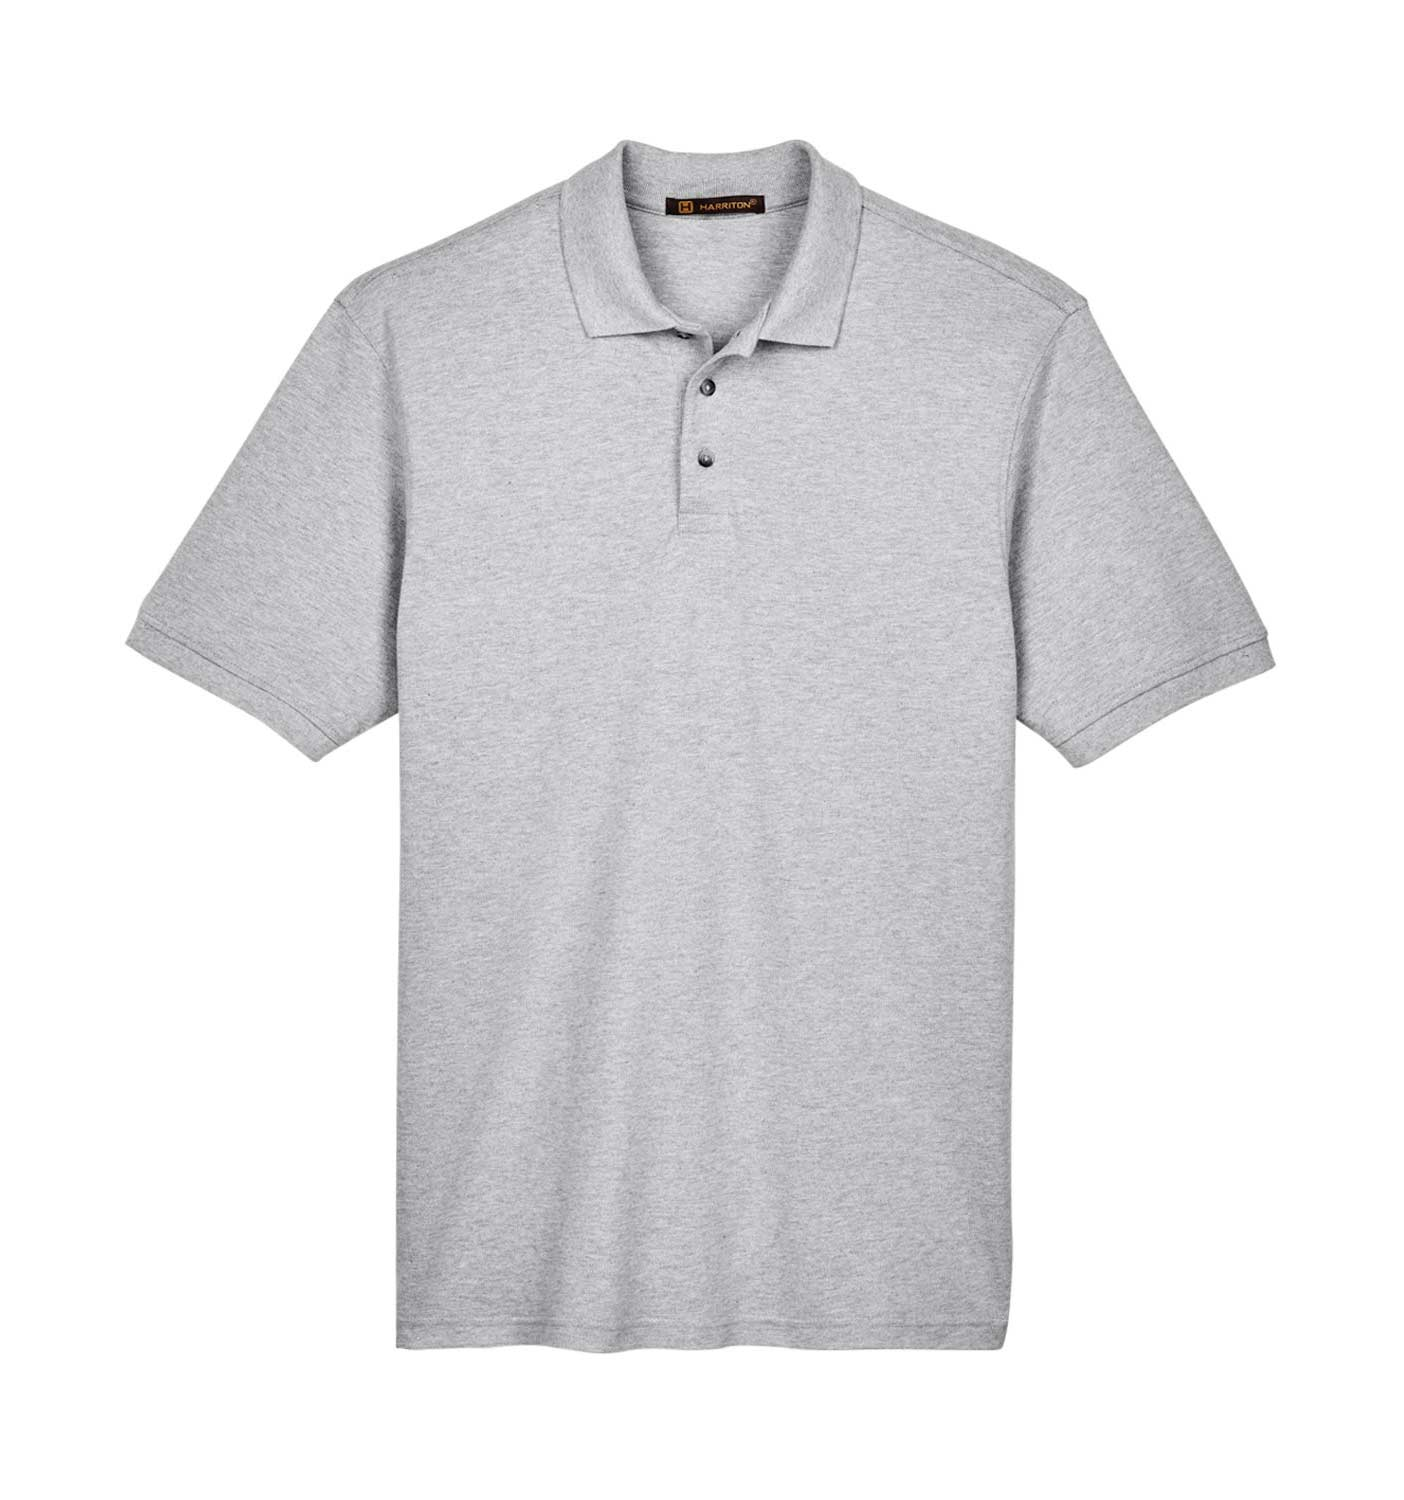 Men's Ringspun Cotton Pique Short-Sleeve Polo